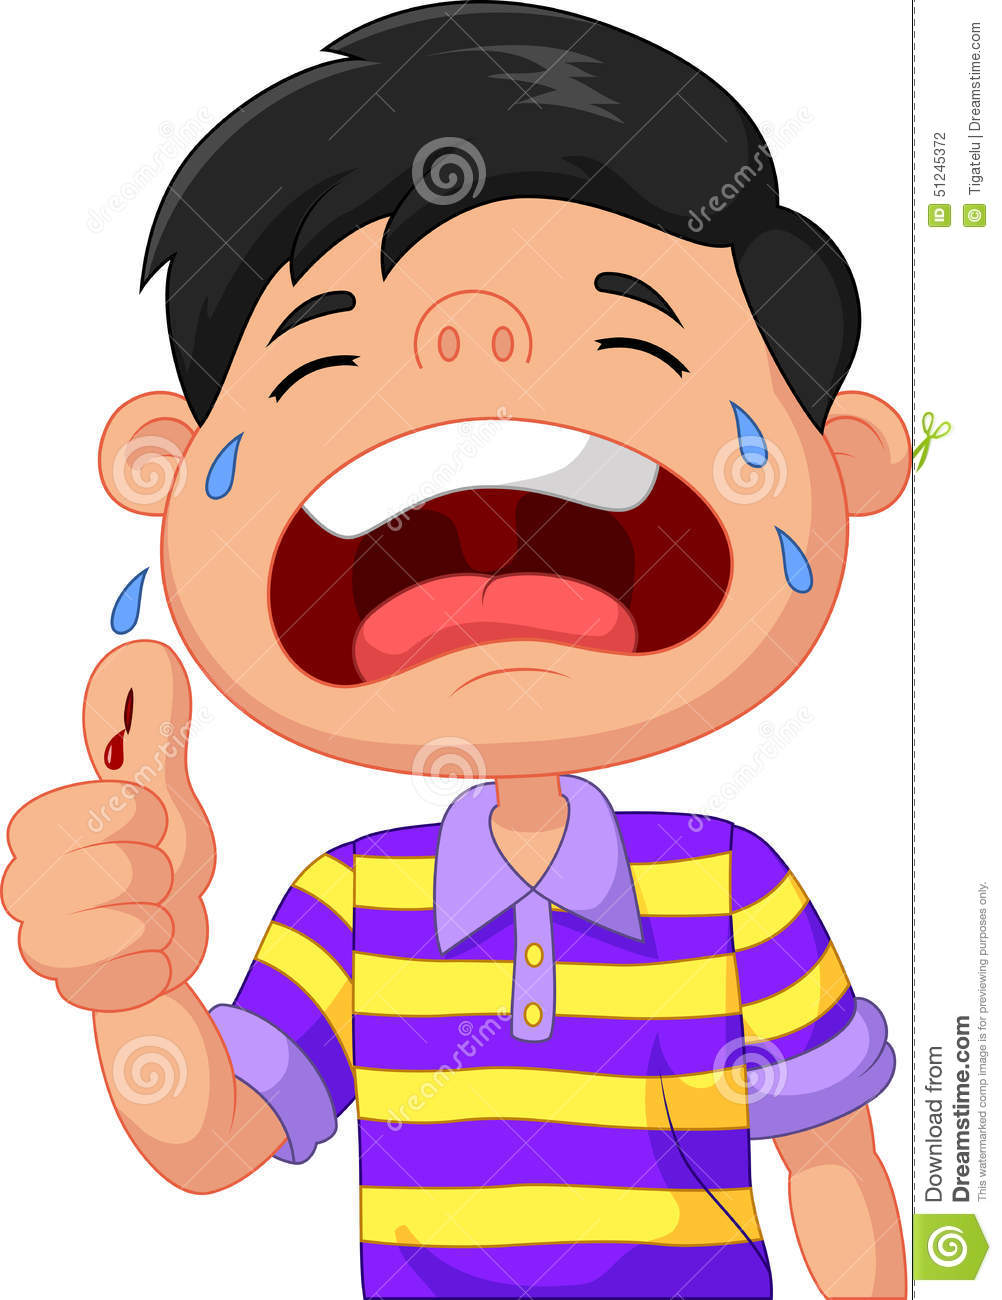 Cartoon Boy Crying Because Of A Cut On His Thumb Stock Vector ...